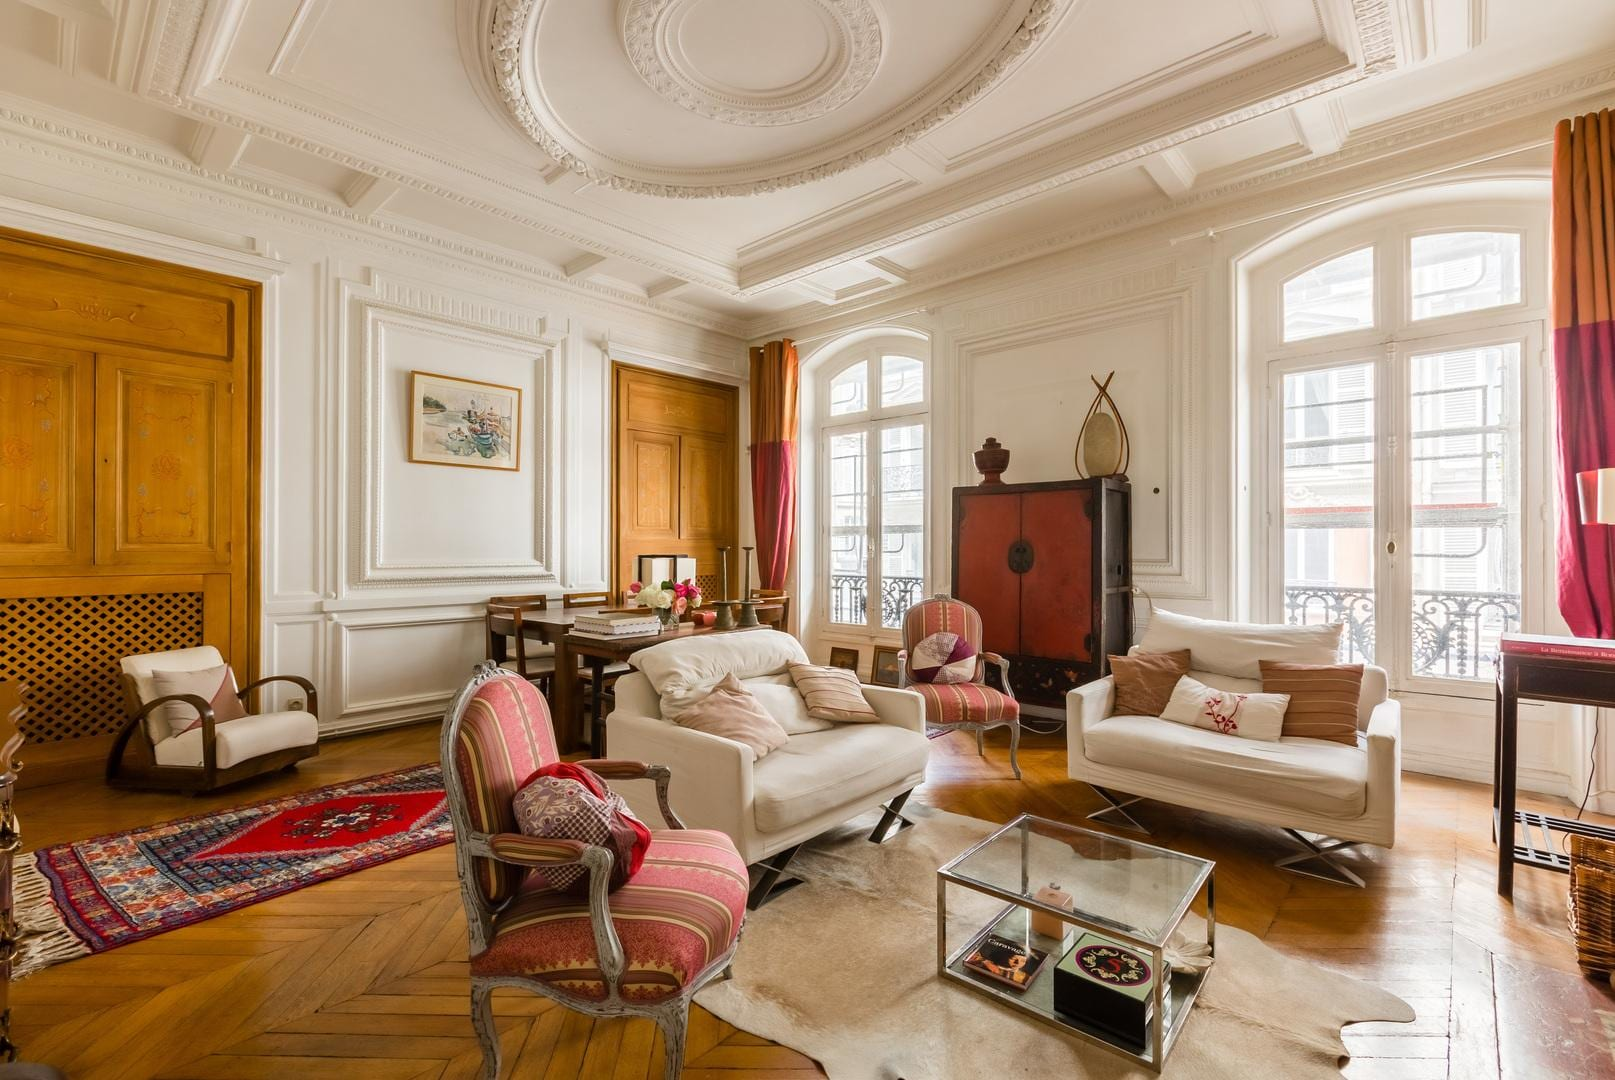 Property Image 1 - Classical Apartment by The Champs-Élysées